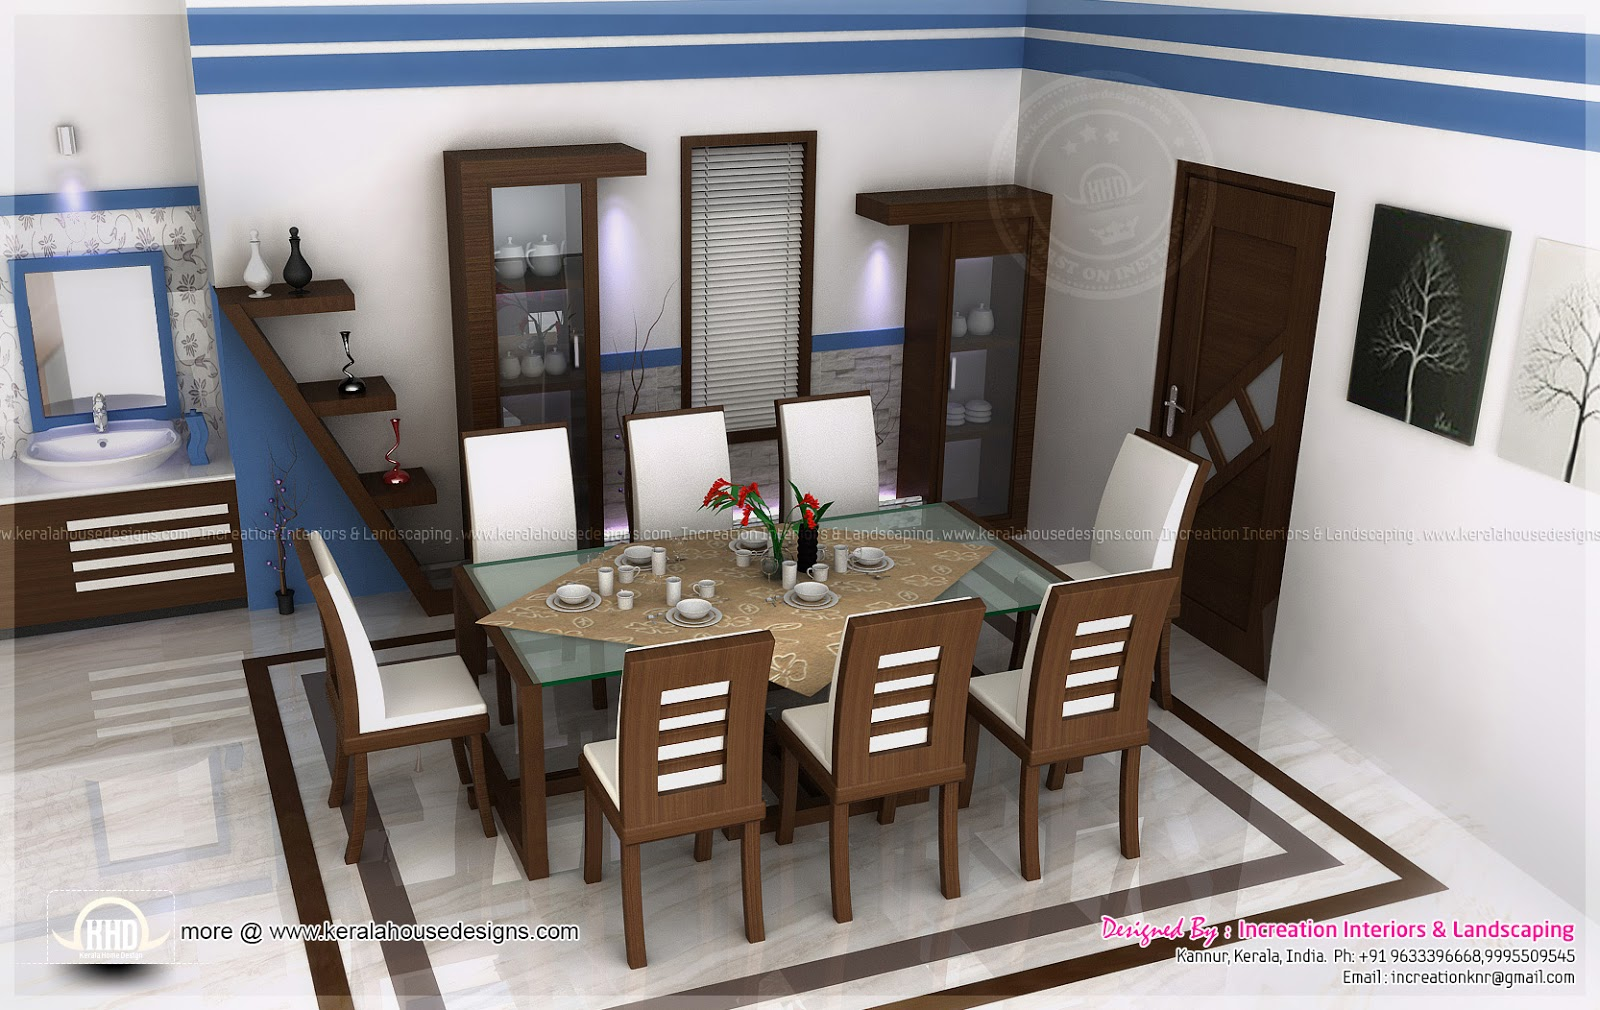 House interior ideas in 3d rendering kerala home design for Interior house plans with photos